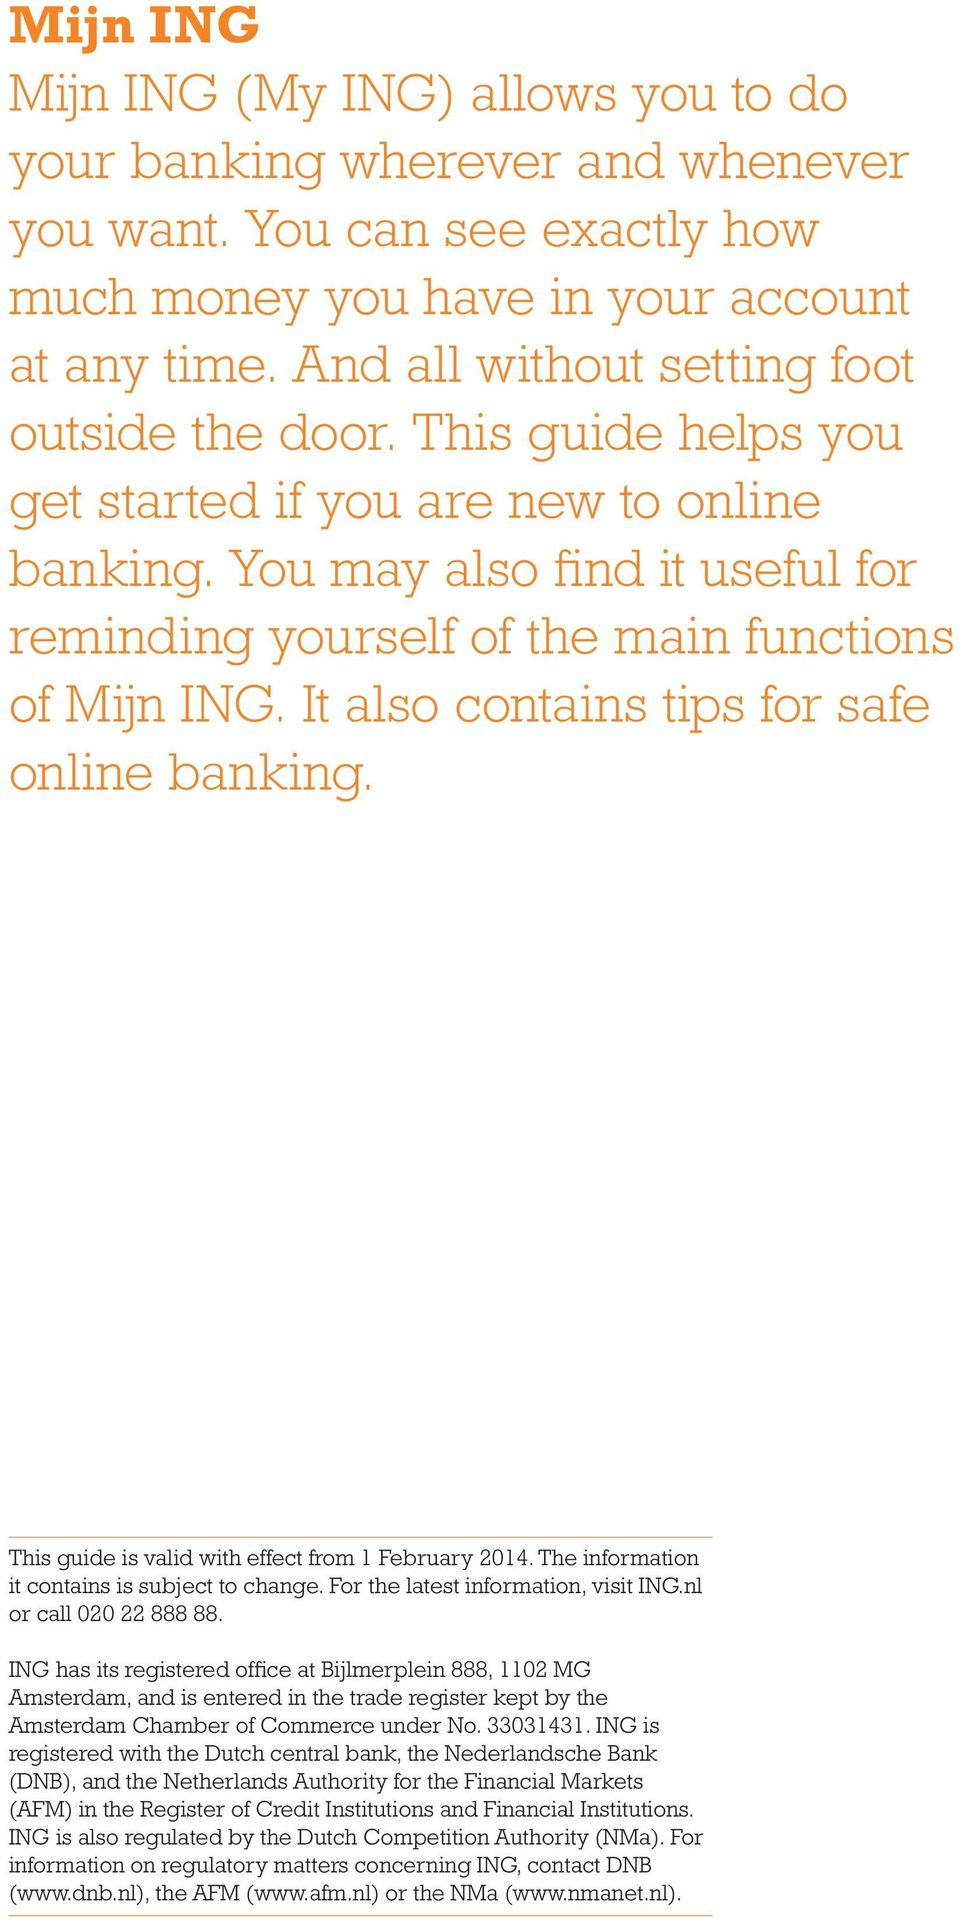 It also contains tips for safe online banking. This guide is valid with effect from 1 February 2014. The information it contains is subject to change. For the latest information, visit ING.